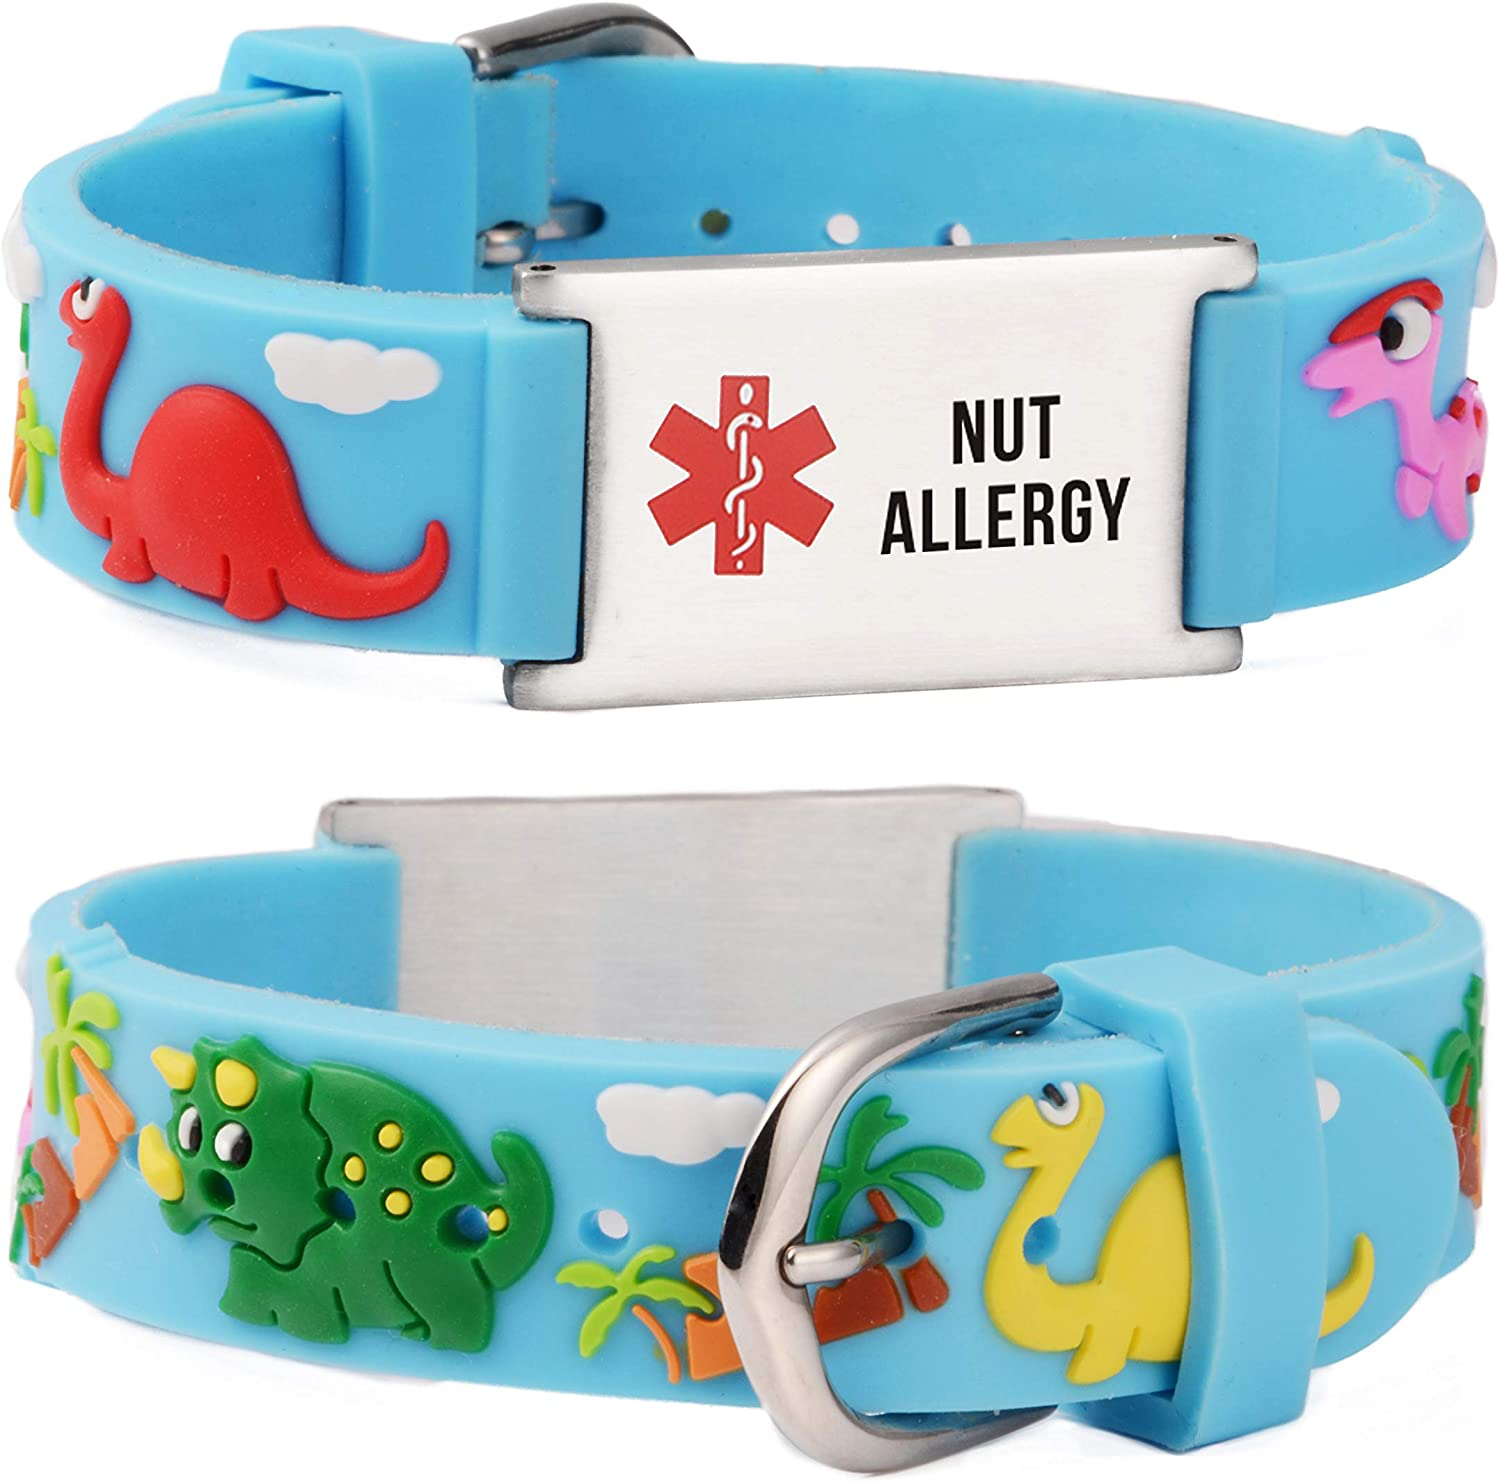 linnalove Cartoon Medical Alert id Bracelets Parents Gift to Son, Daughter, Brother, Sister-Dinosaur-Blue